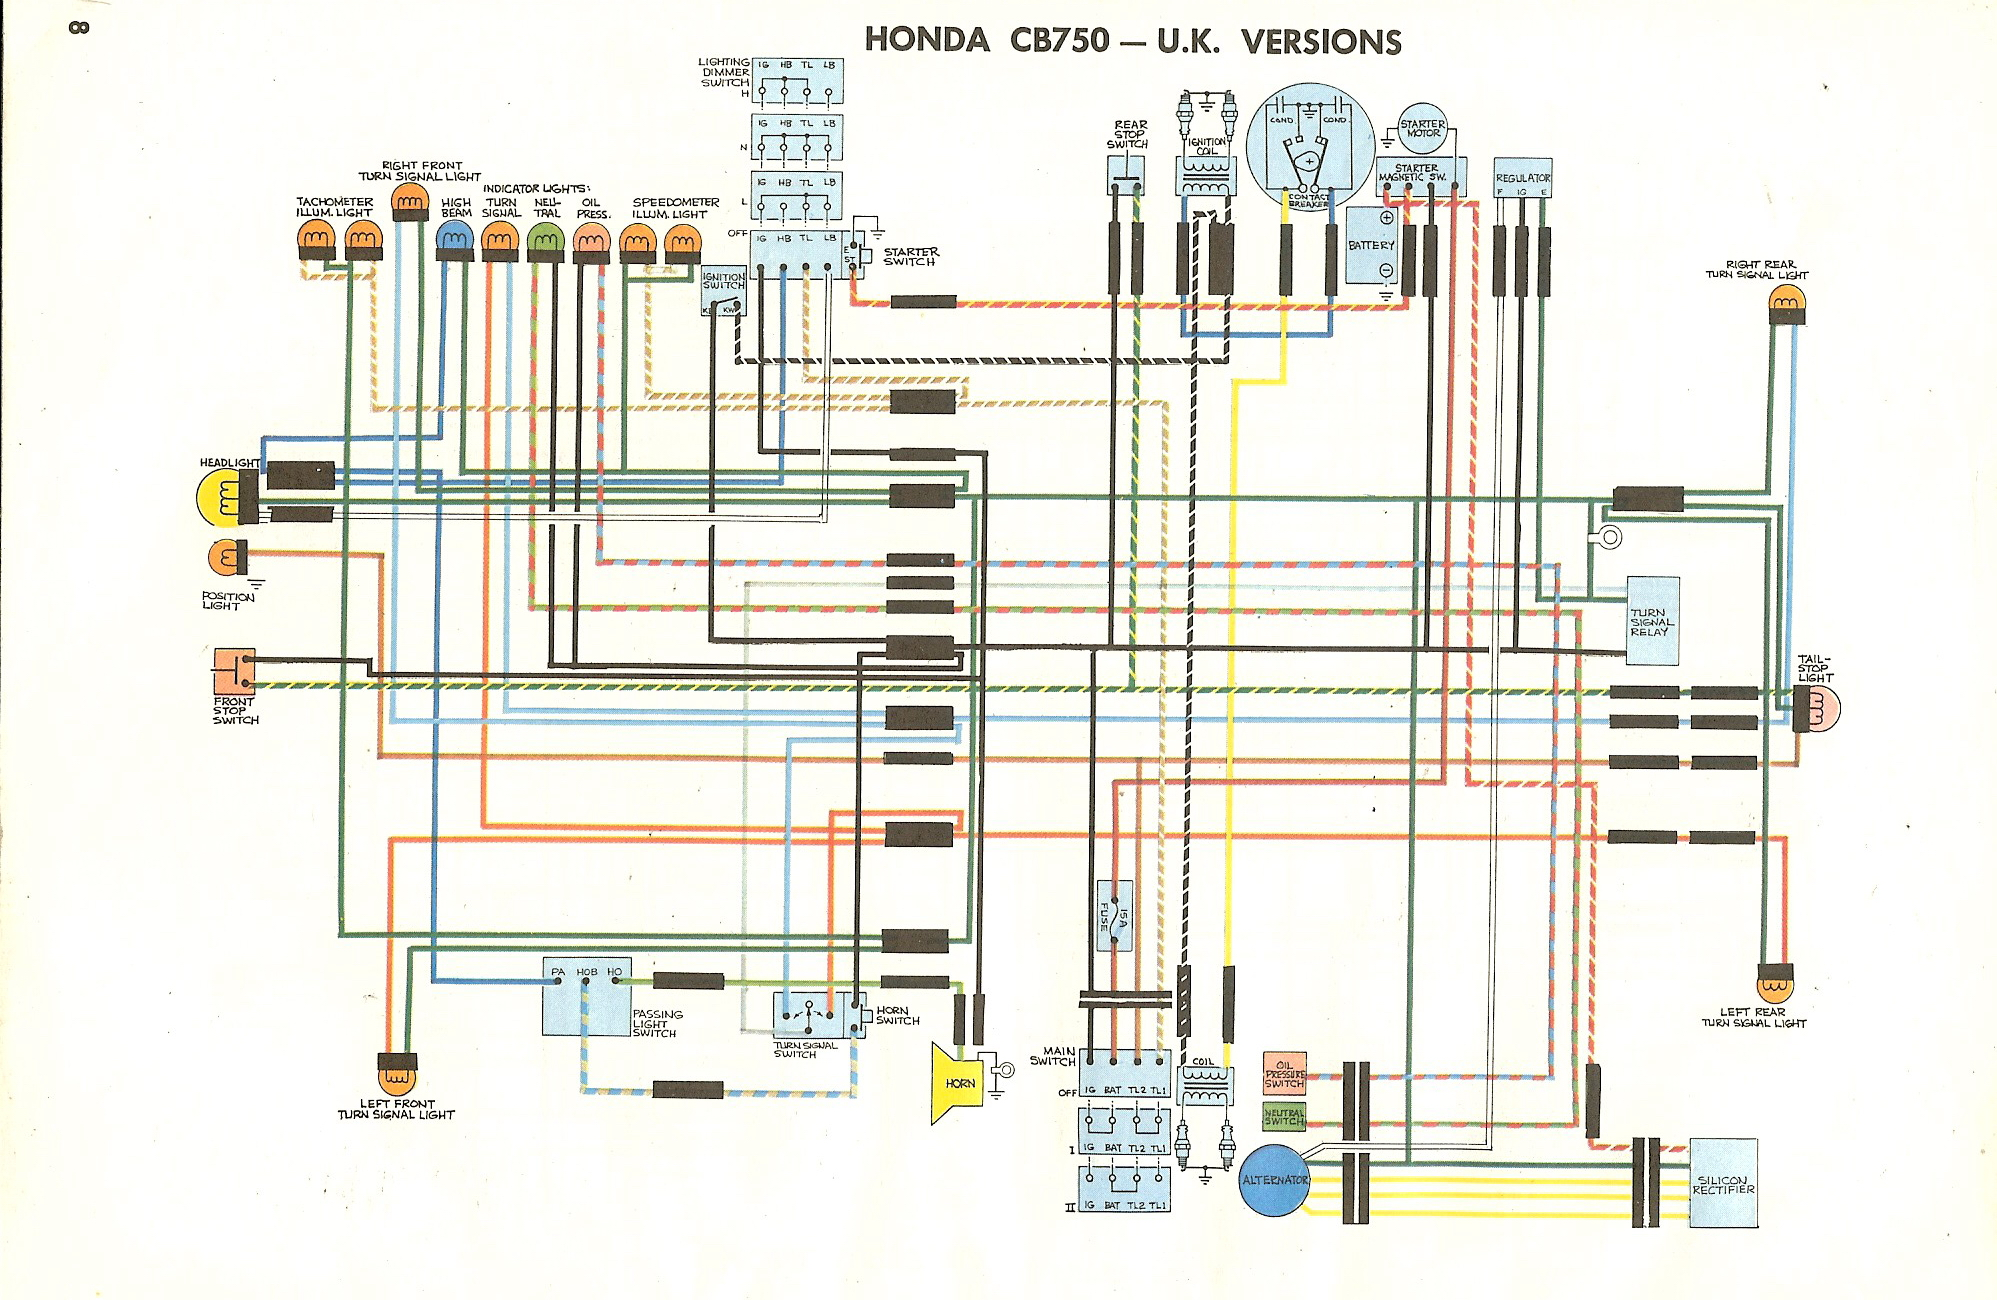 Cb750k Wiring Diagram Data Western Plow